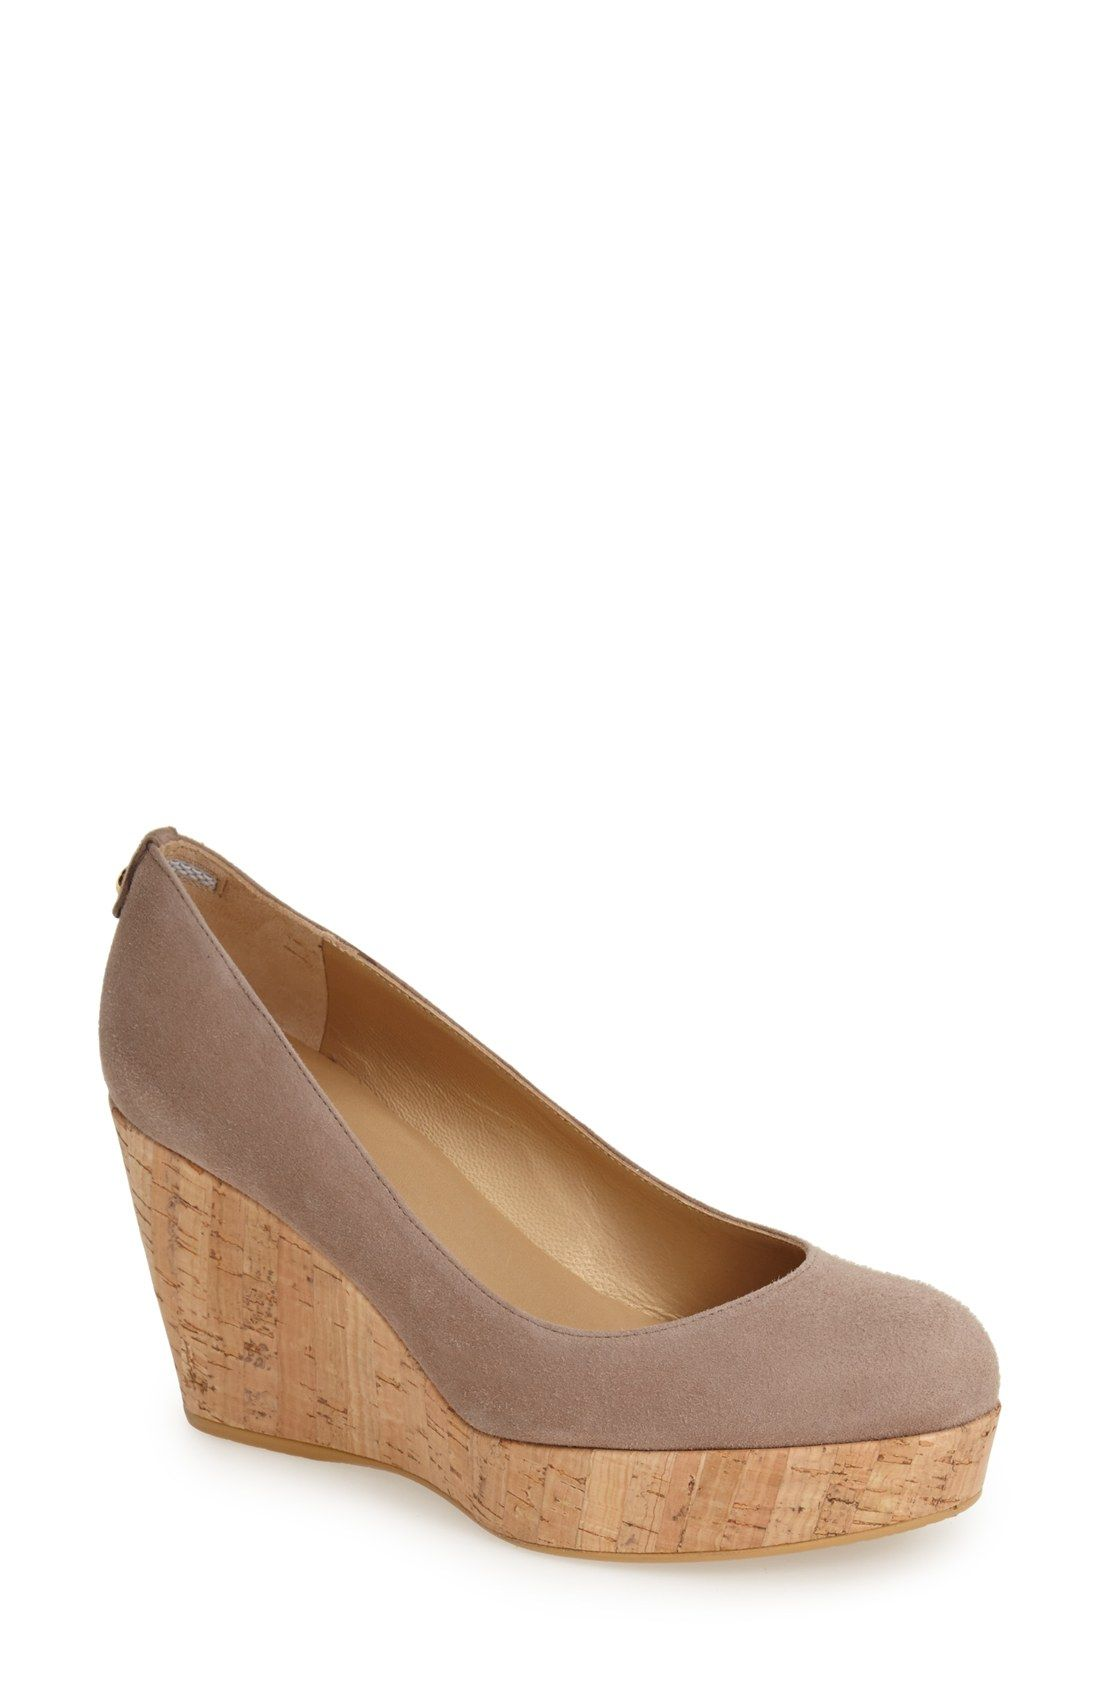 Stuart Weitzman Perforated Wedge Pumps cheap sale brand new unisex clearance sale eastbay sale online OGyf4